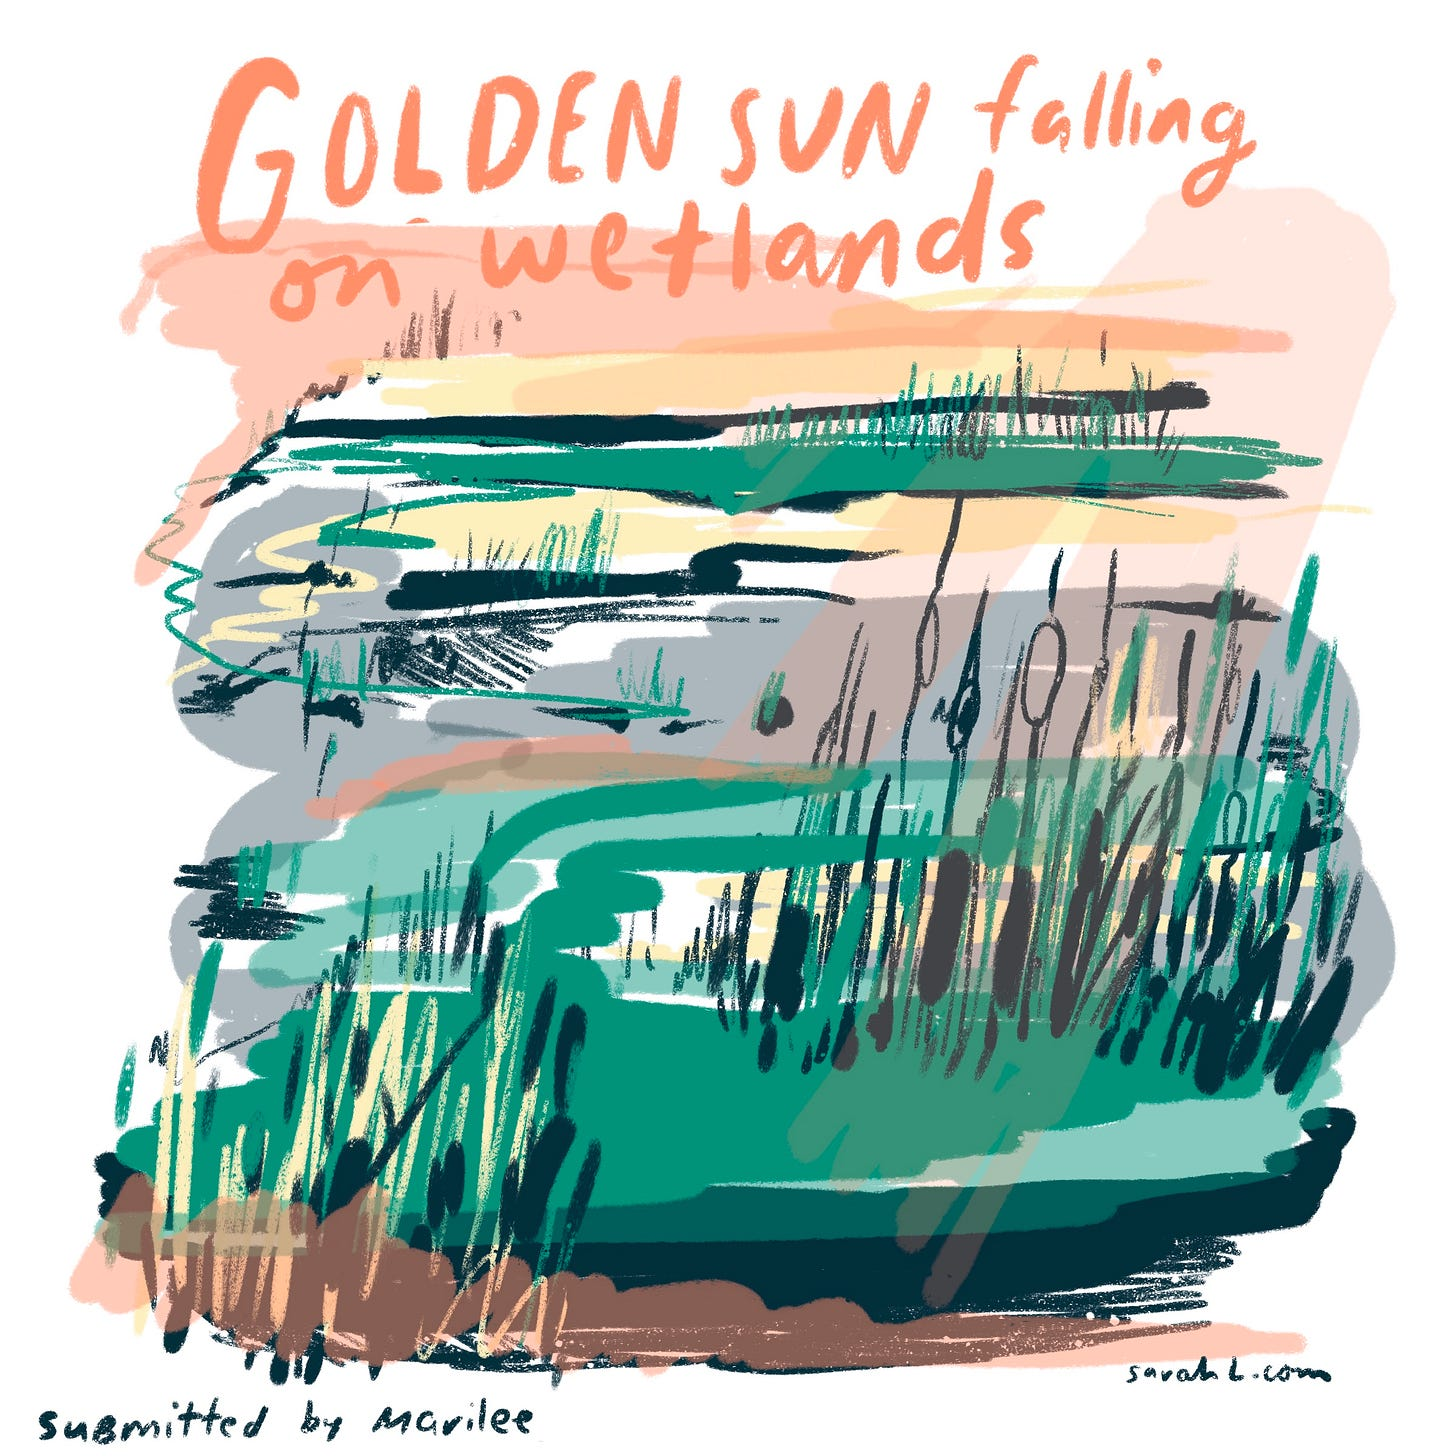 """An illustrated image of wetlands, includes text at the top reading """"Golden sun falling on wetlands."""" The sky is colored orange and yellow, and the wetlands are illustrated with green grasses, grey, white, and yellow water, and grey sketched cattails. The illustration was inspired by a memory submitted by Marilee."""